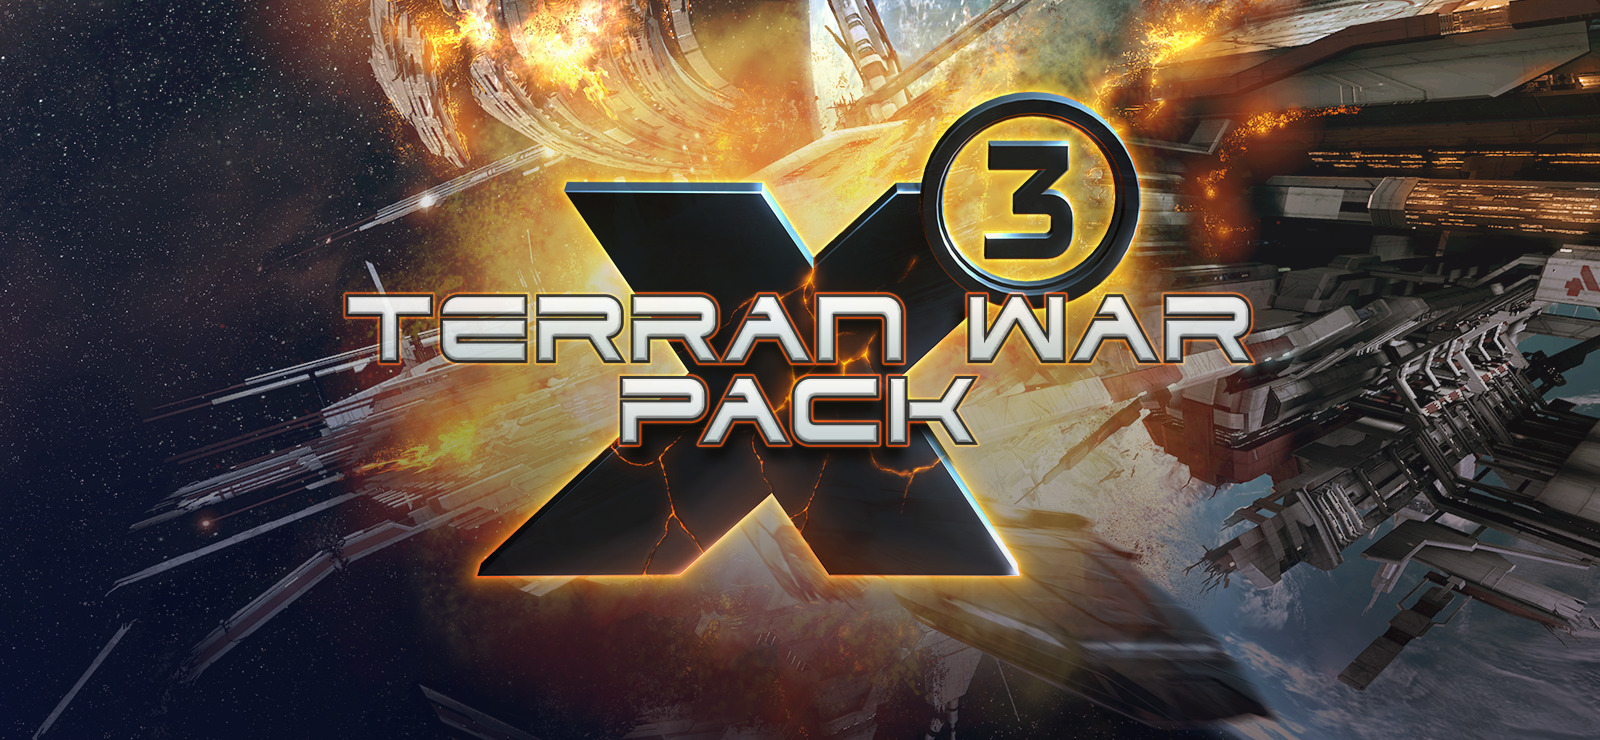 X3: terran war pack download free gog pc games.